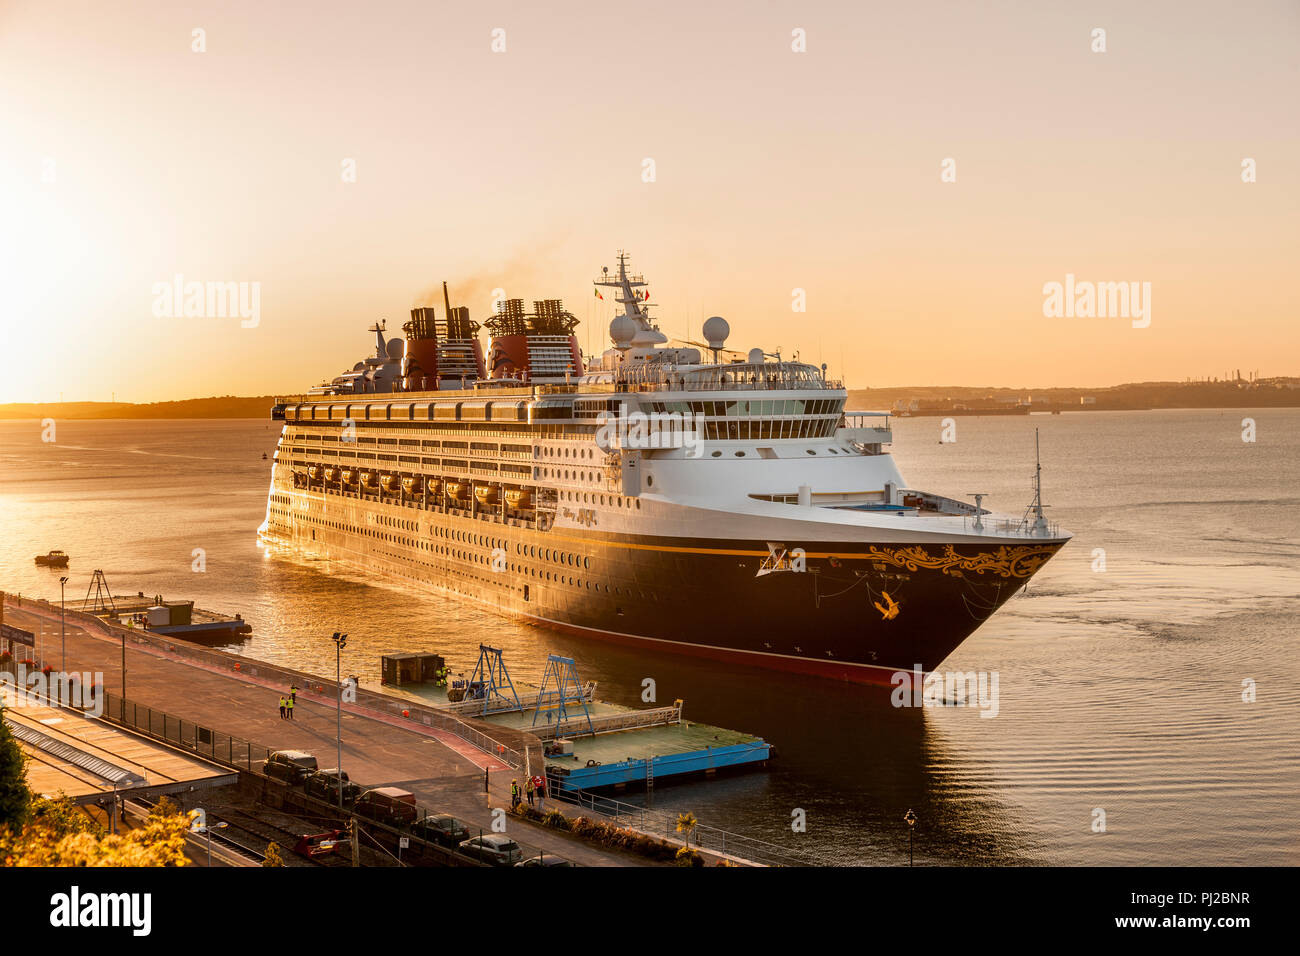 Cobh, Cork, Ireland. 04th April, 2018. Cruise ship Disney Magic about to berth at the deep water quay as she arrives on her maiden call to Cobh, Co.Cork. Credit: David Creedon/Alamy Live News - Stock Image